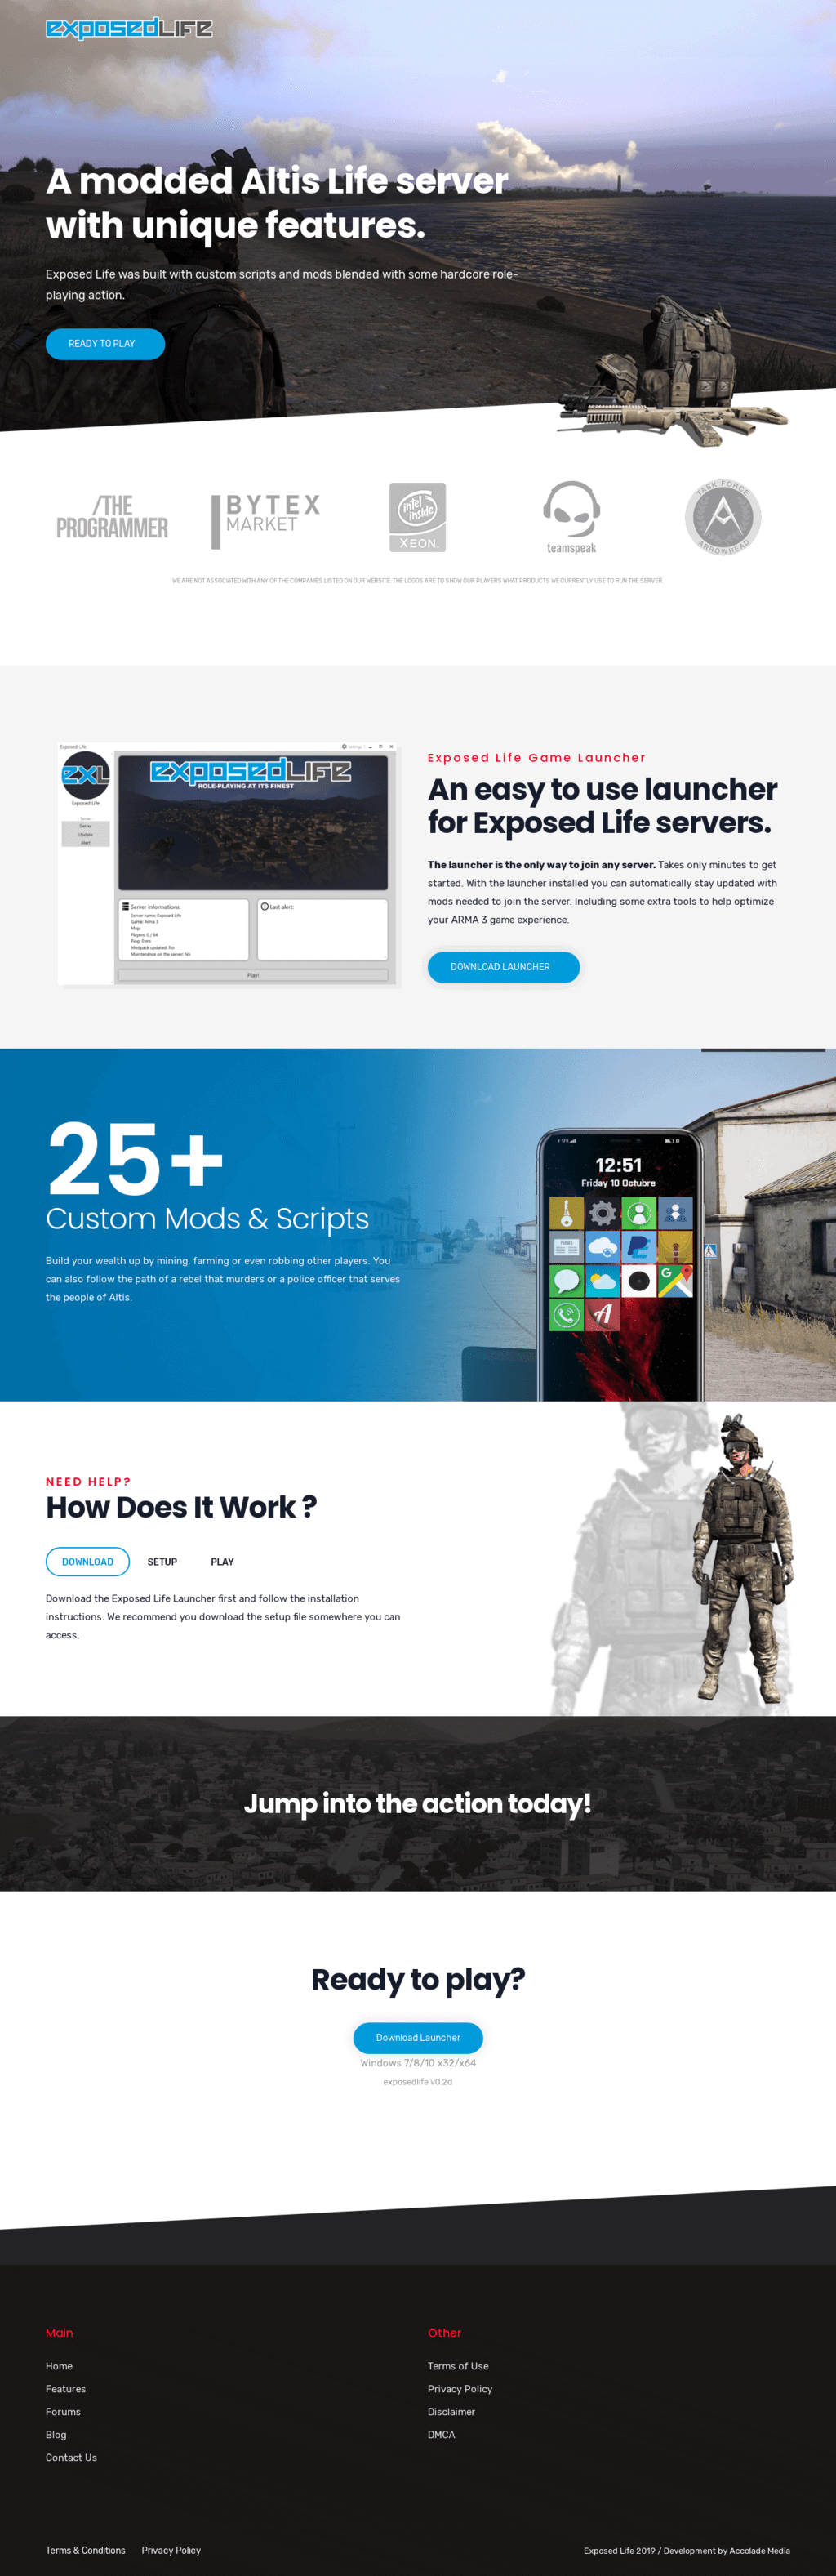 exposedlife-website-design-layout-accolademedia